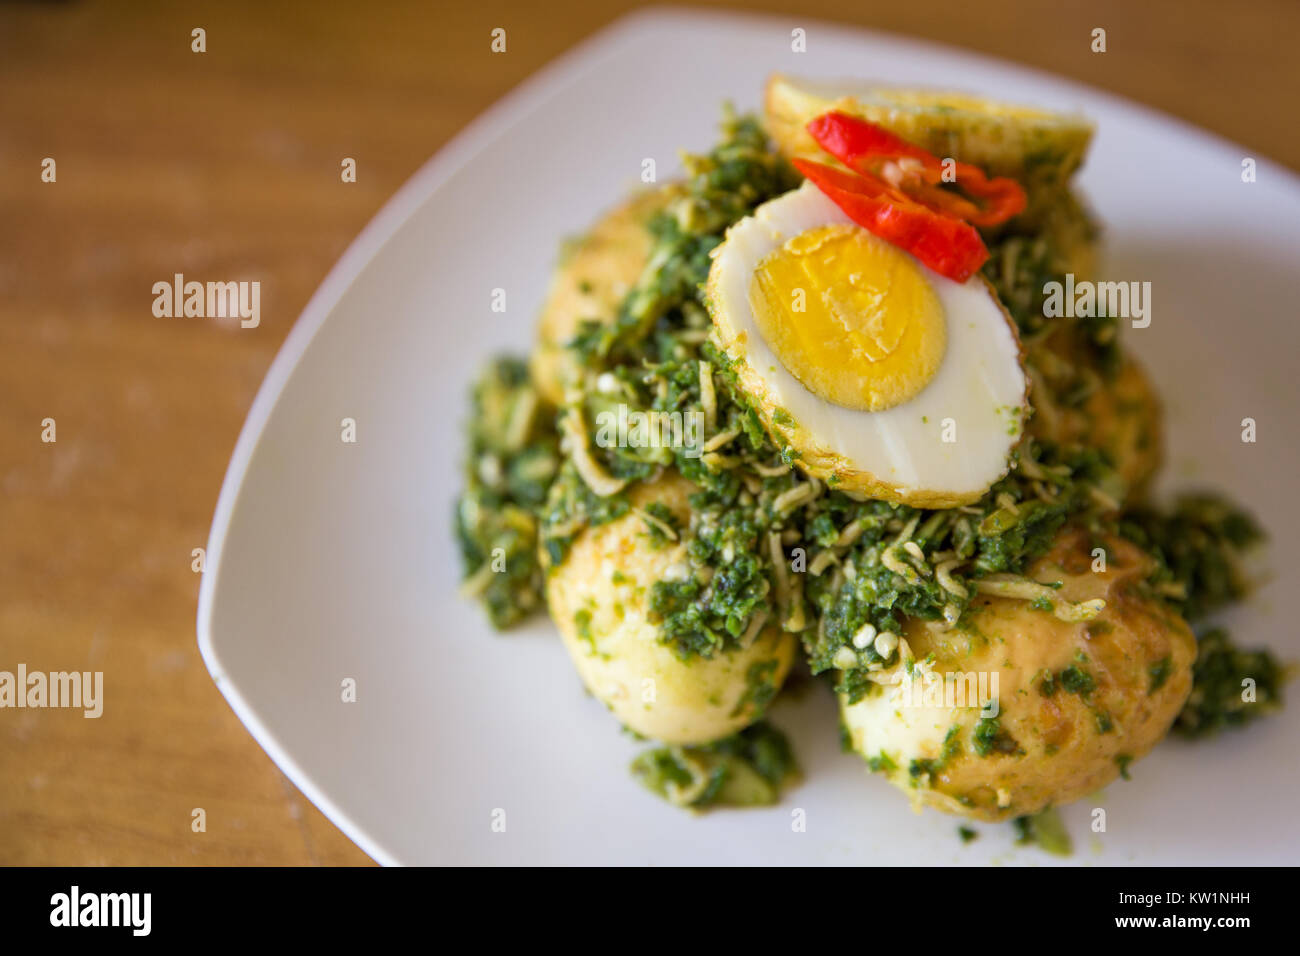 Stir-fry egg and green chili sauce mix with anchovy - Stock Image